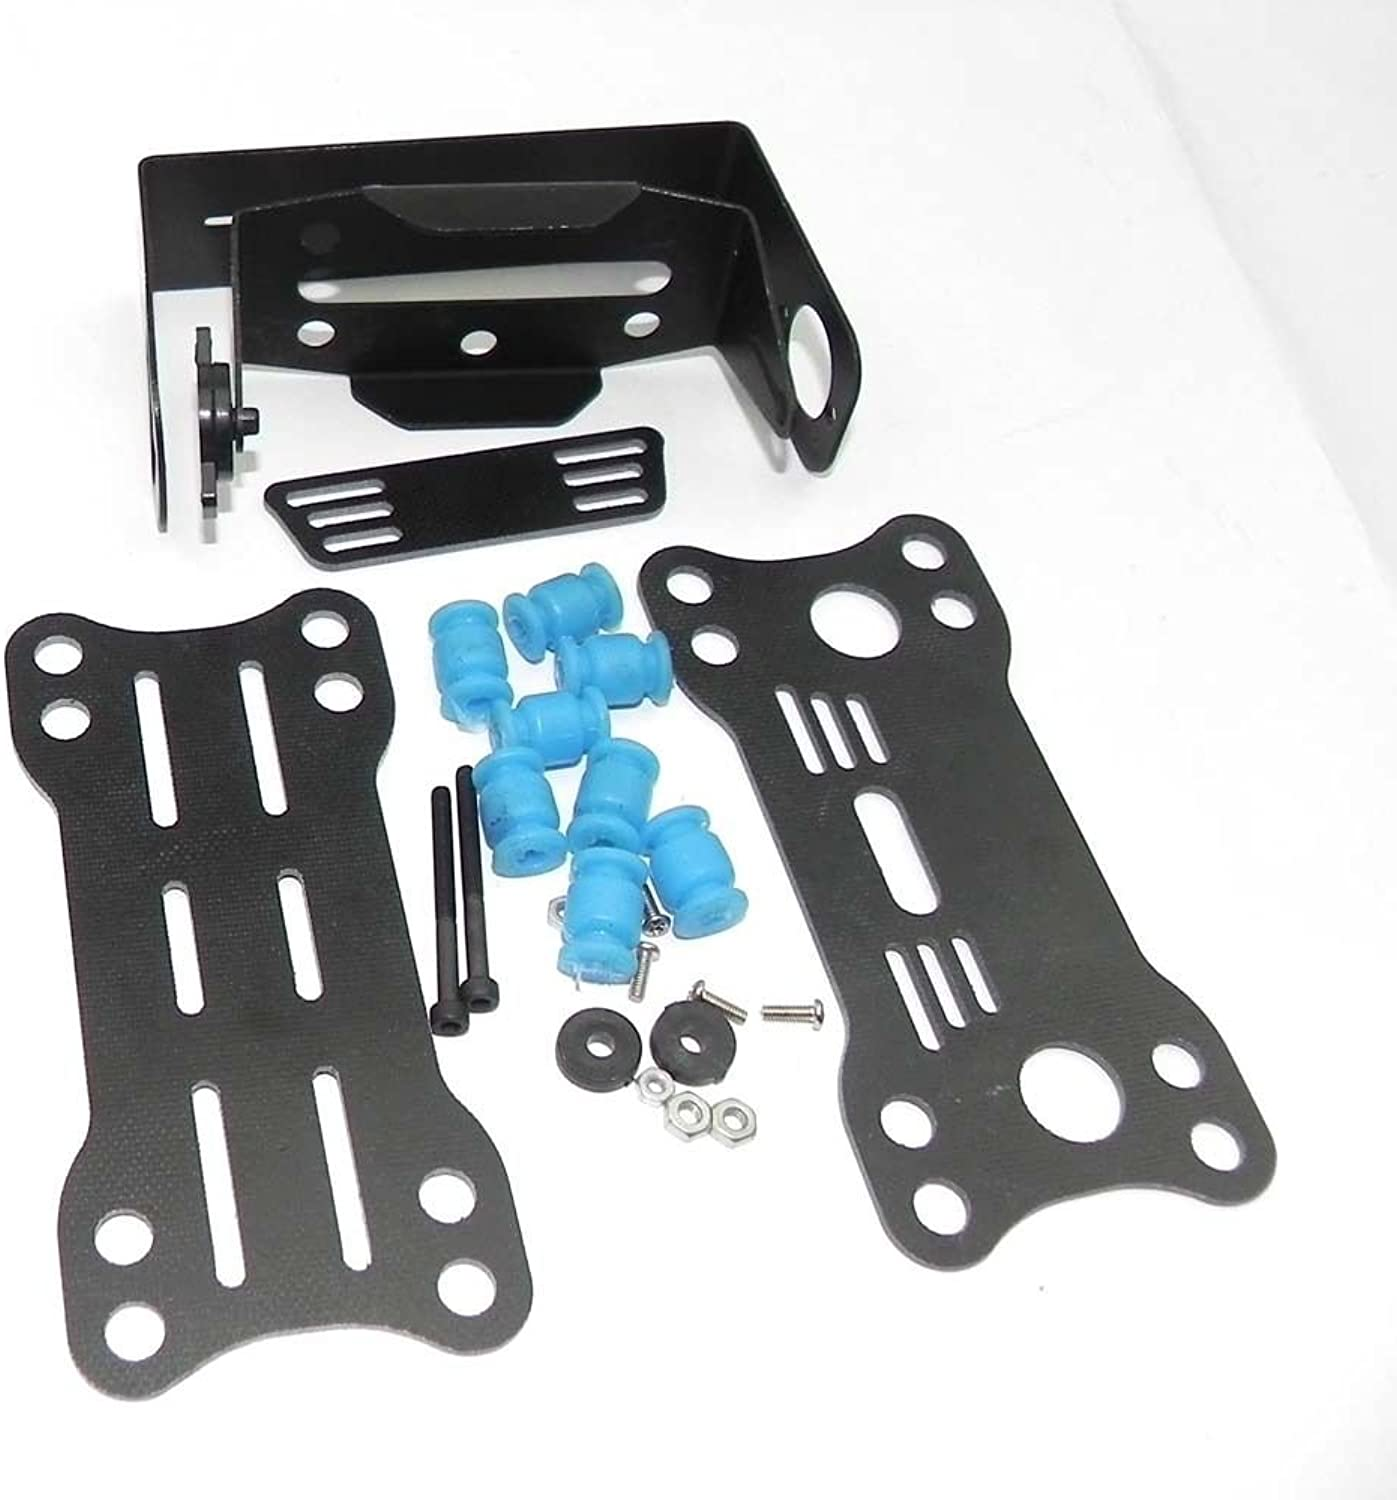 Metal Glass Fiber PTZ Pan Tilt Camera Mount 2 Axis for SJ4000 Quadcopter